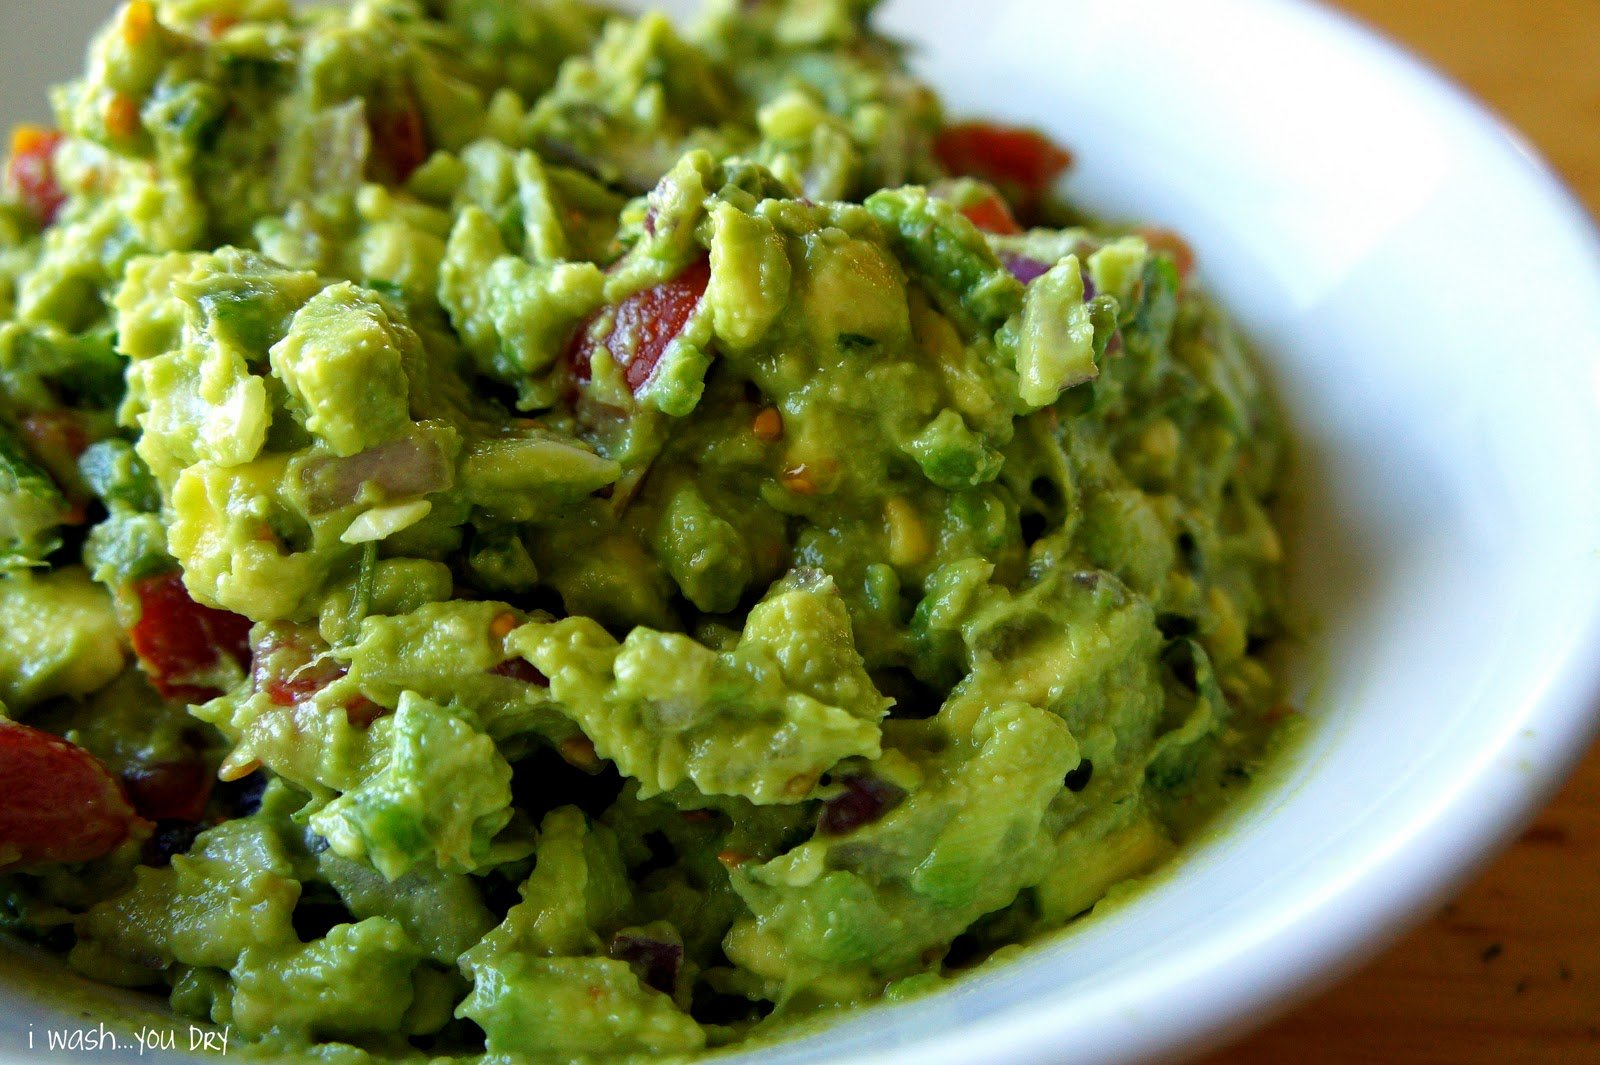 Guacamole is an avocado-based sauce that originated with the Aztecs in ...